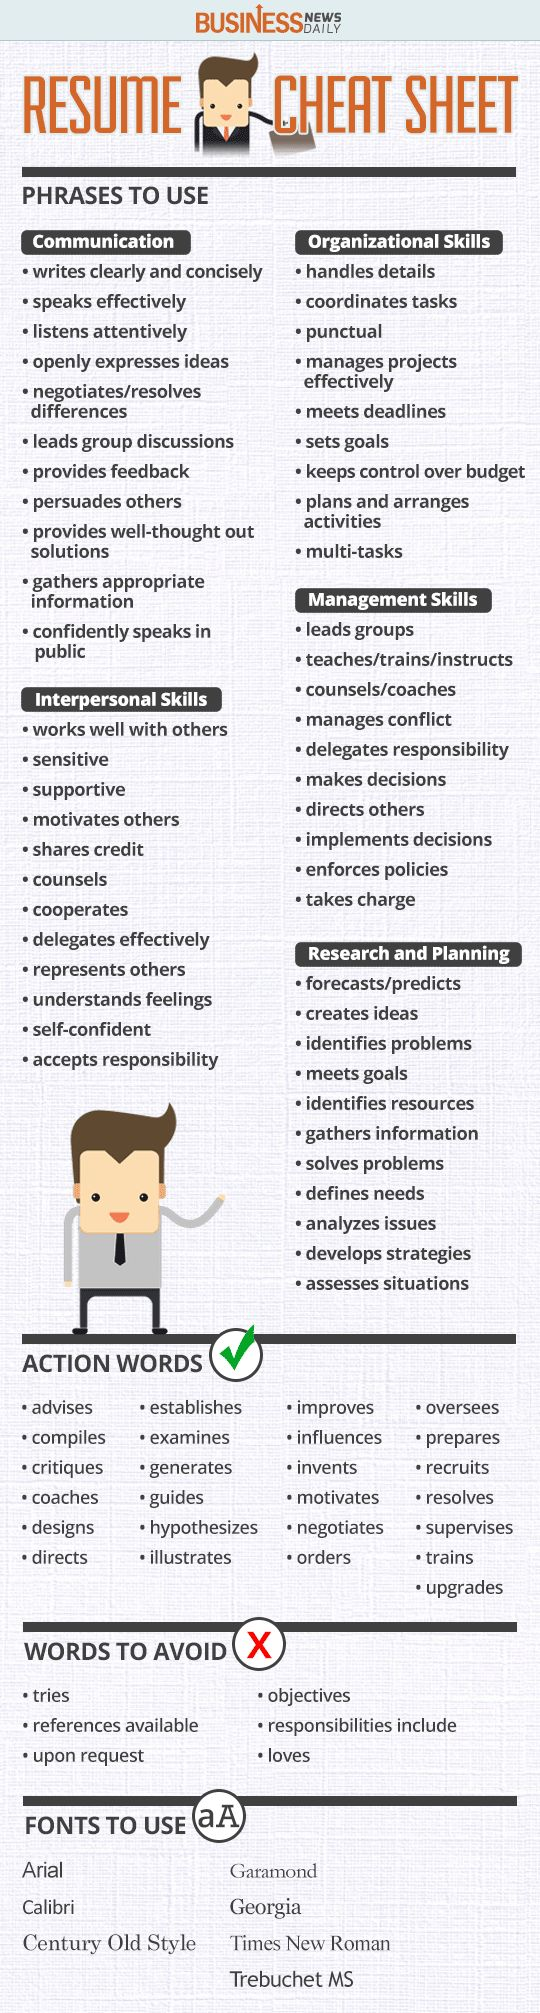 Opposenewapstandardsus  Winning  Ideas About Resume On Pinterest  Cv Format Resume Cv And  With Exquisite Resume Cheat Sheet Infographic Andrews Almost Done With A Complete Unit On Employment Which With Attractive List Of Skills To Put On A Resume Also My Perfect Resume Review In Addition Free Resume Help And Cv Or Resume As Well As Free Resumes Online Additionally Good Font For Resume From Pinterestcom With Opposenewapstandardsus  Exquisite  Ideas About Resume On Pinterest  Cv Format Resume Cv And  With Attractive Resume Cheat Sheet Infographic Andrews Almost Done With A Complete Unit On Employment Which And Winning List Of Skills To Put On A Resume Also My Perfect Resume Review In Addition Free Resume Help From Pinterestcom